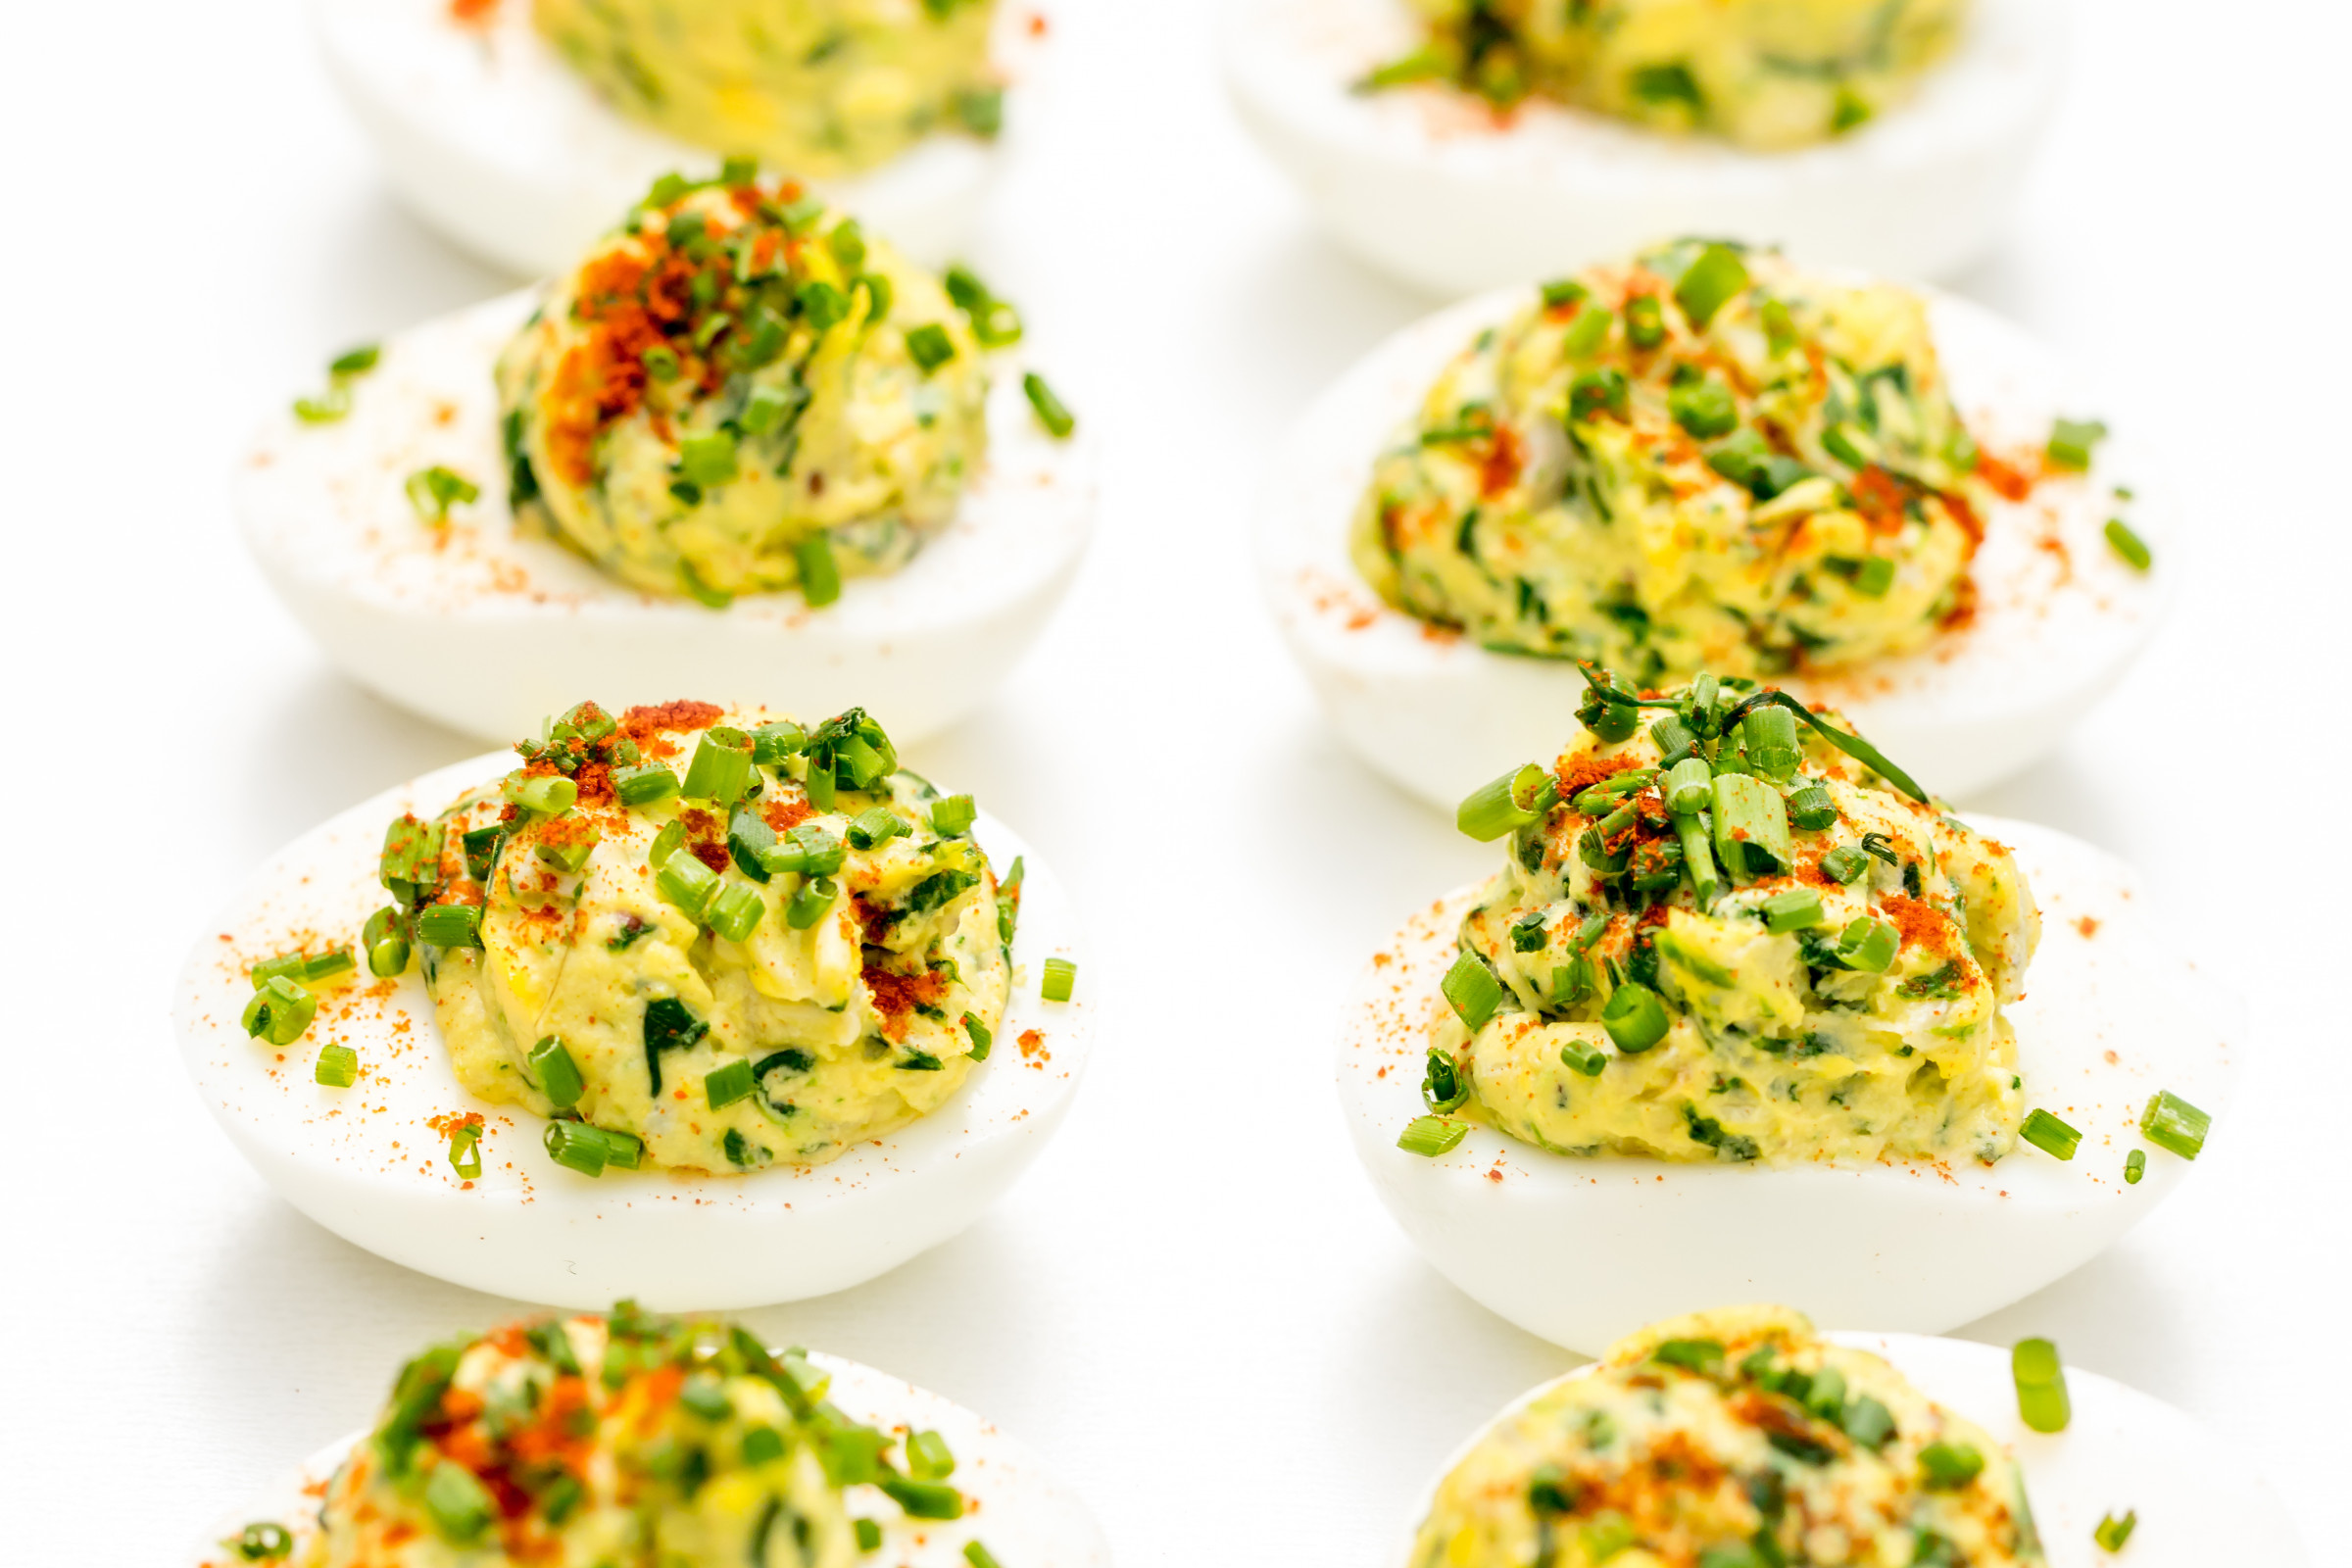 Recipes to add to your Easter dinner menu